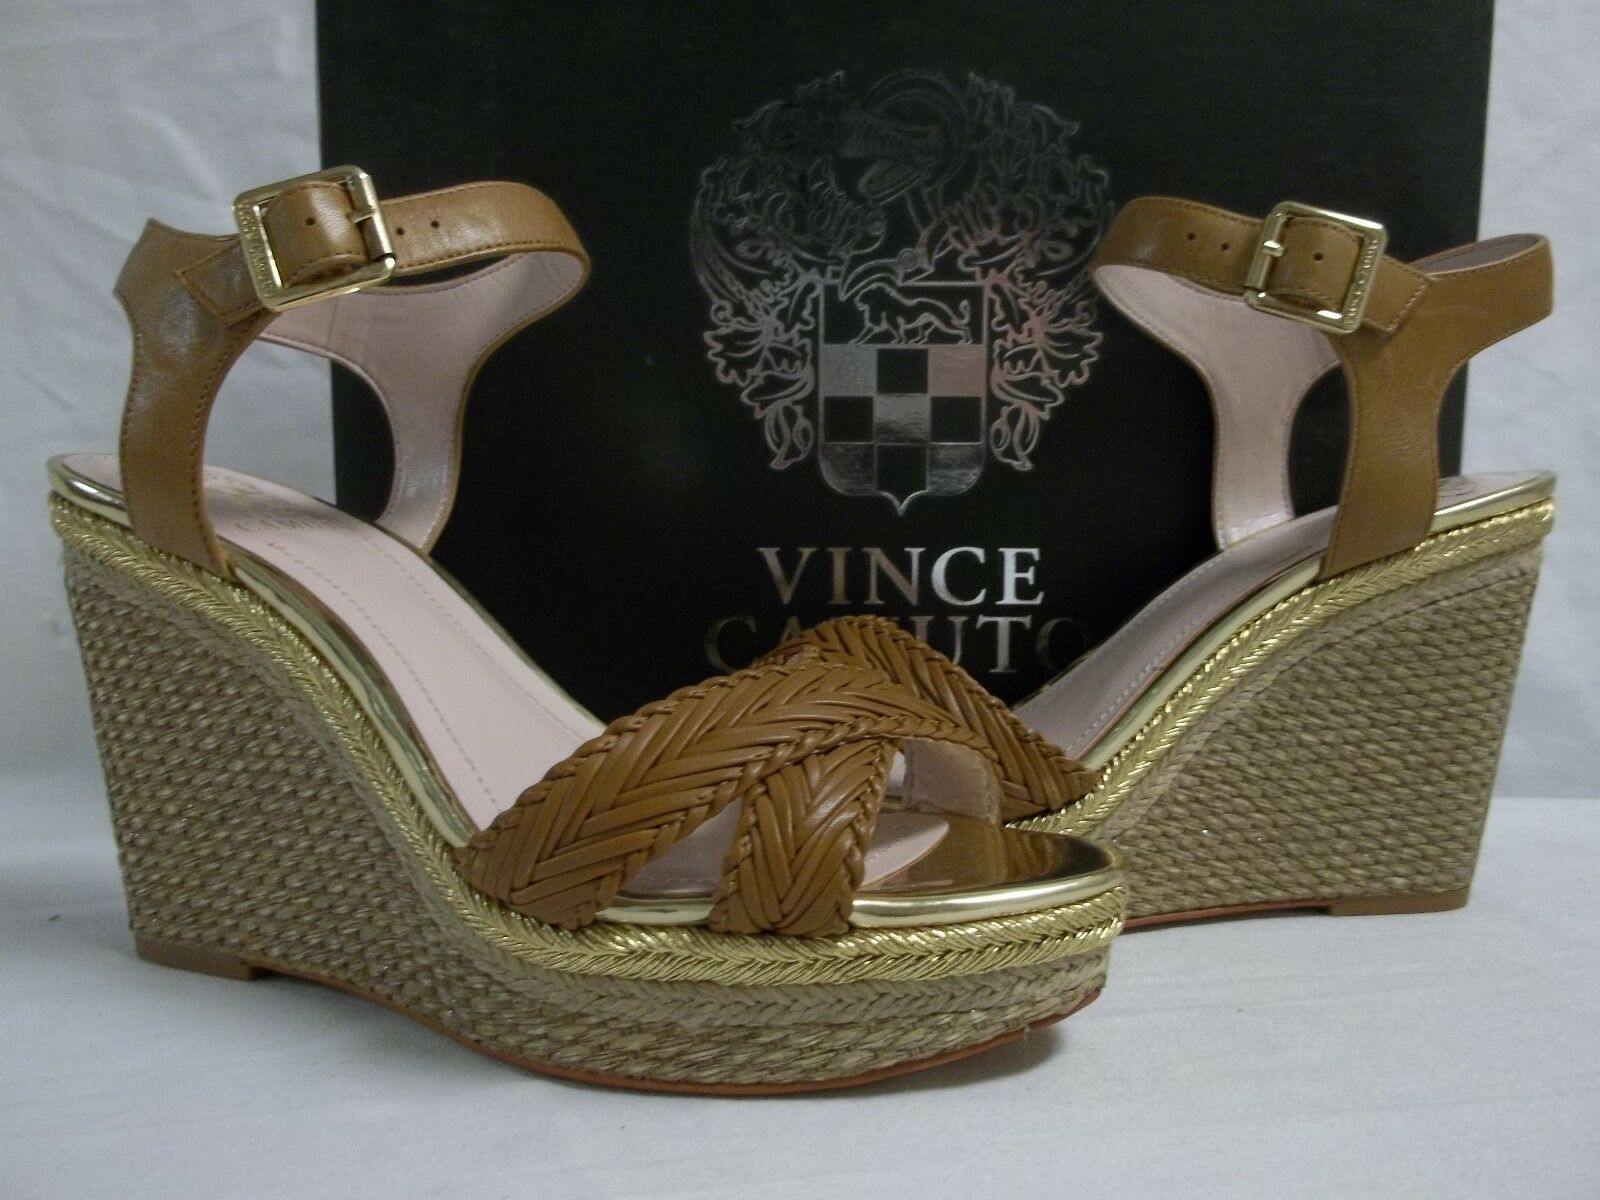 Vince Camuto Sz 8.5 M Tadeta Beachwood Leather Open Toe Wedges New Womens Shoes